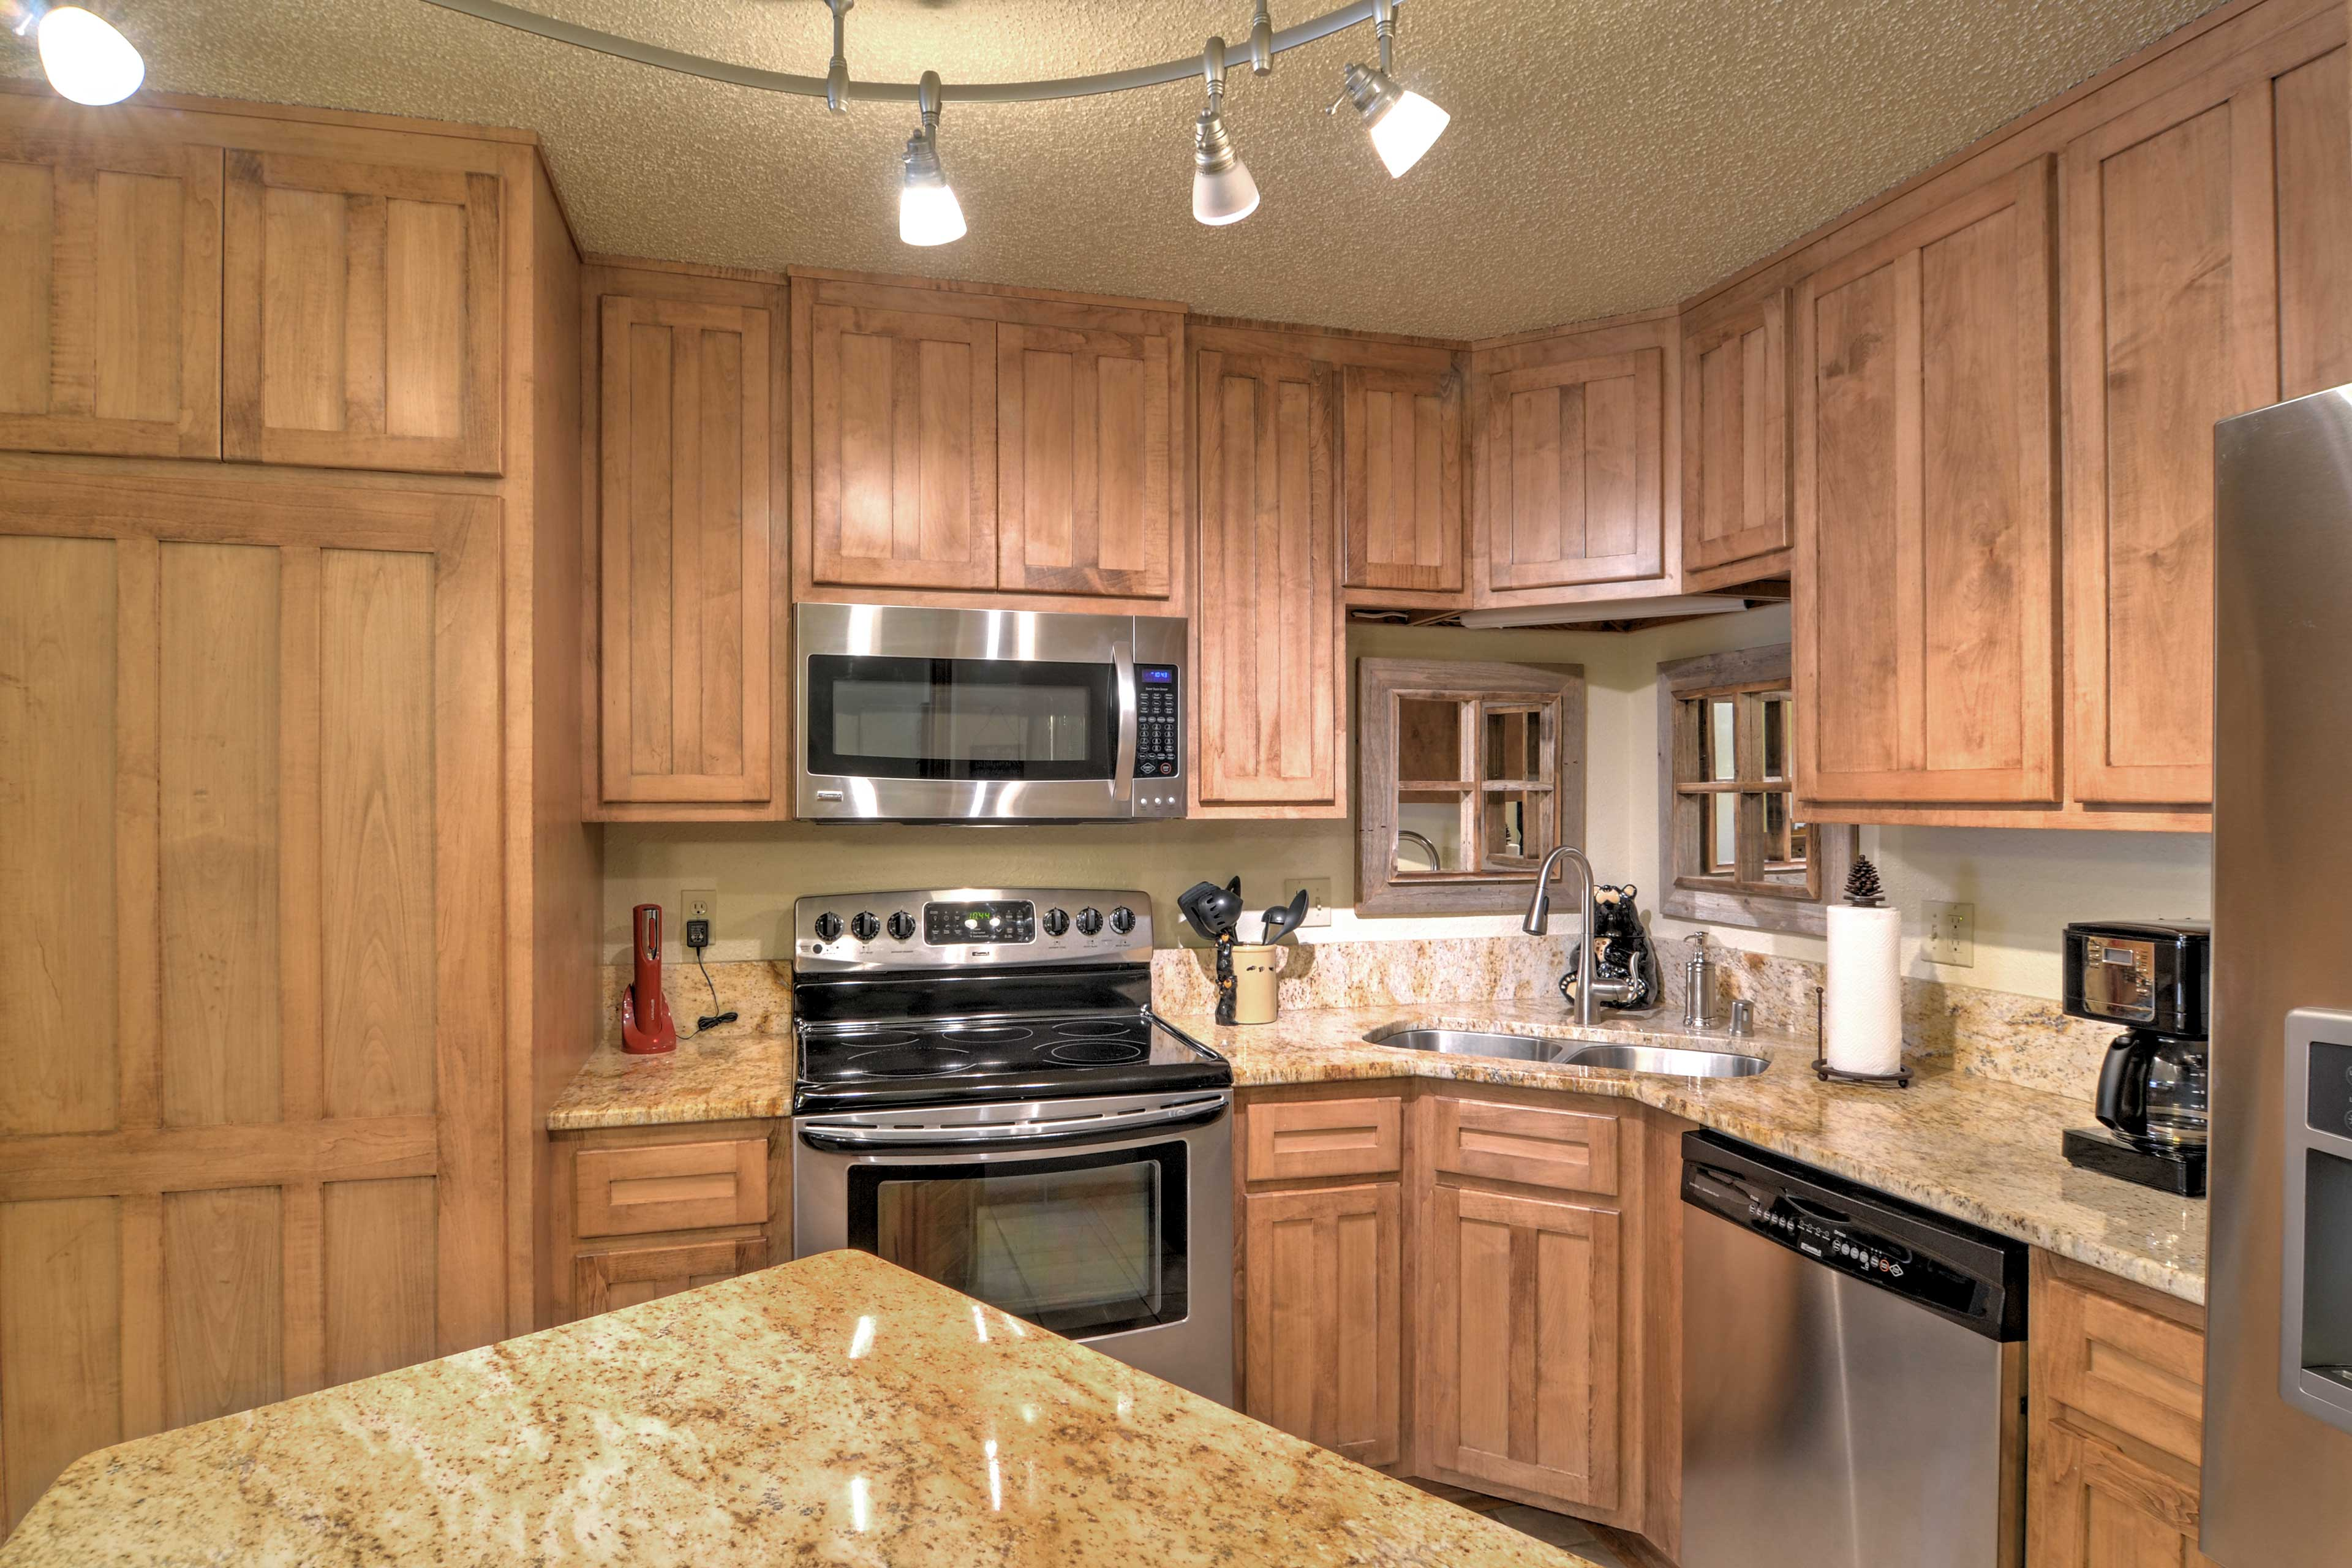 Prepare a tasty treat in this fully equipped kitchen.